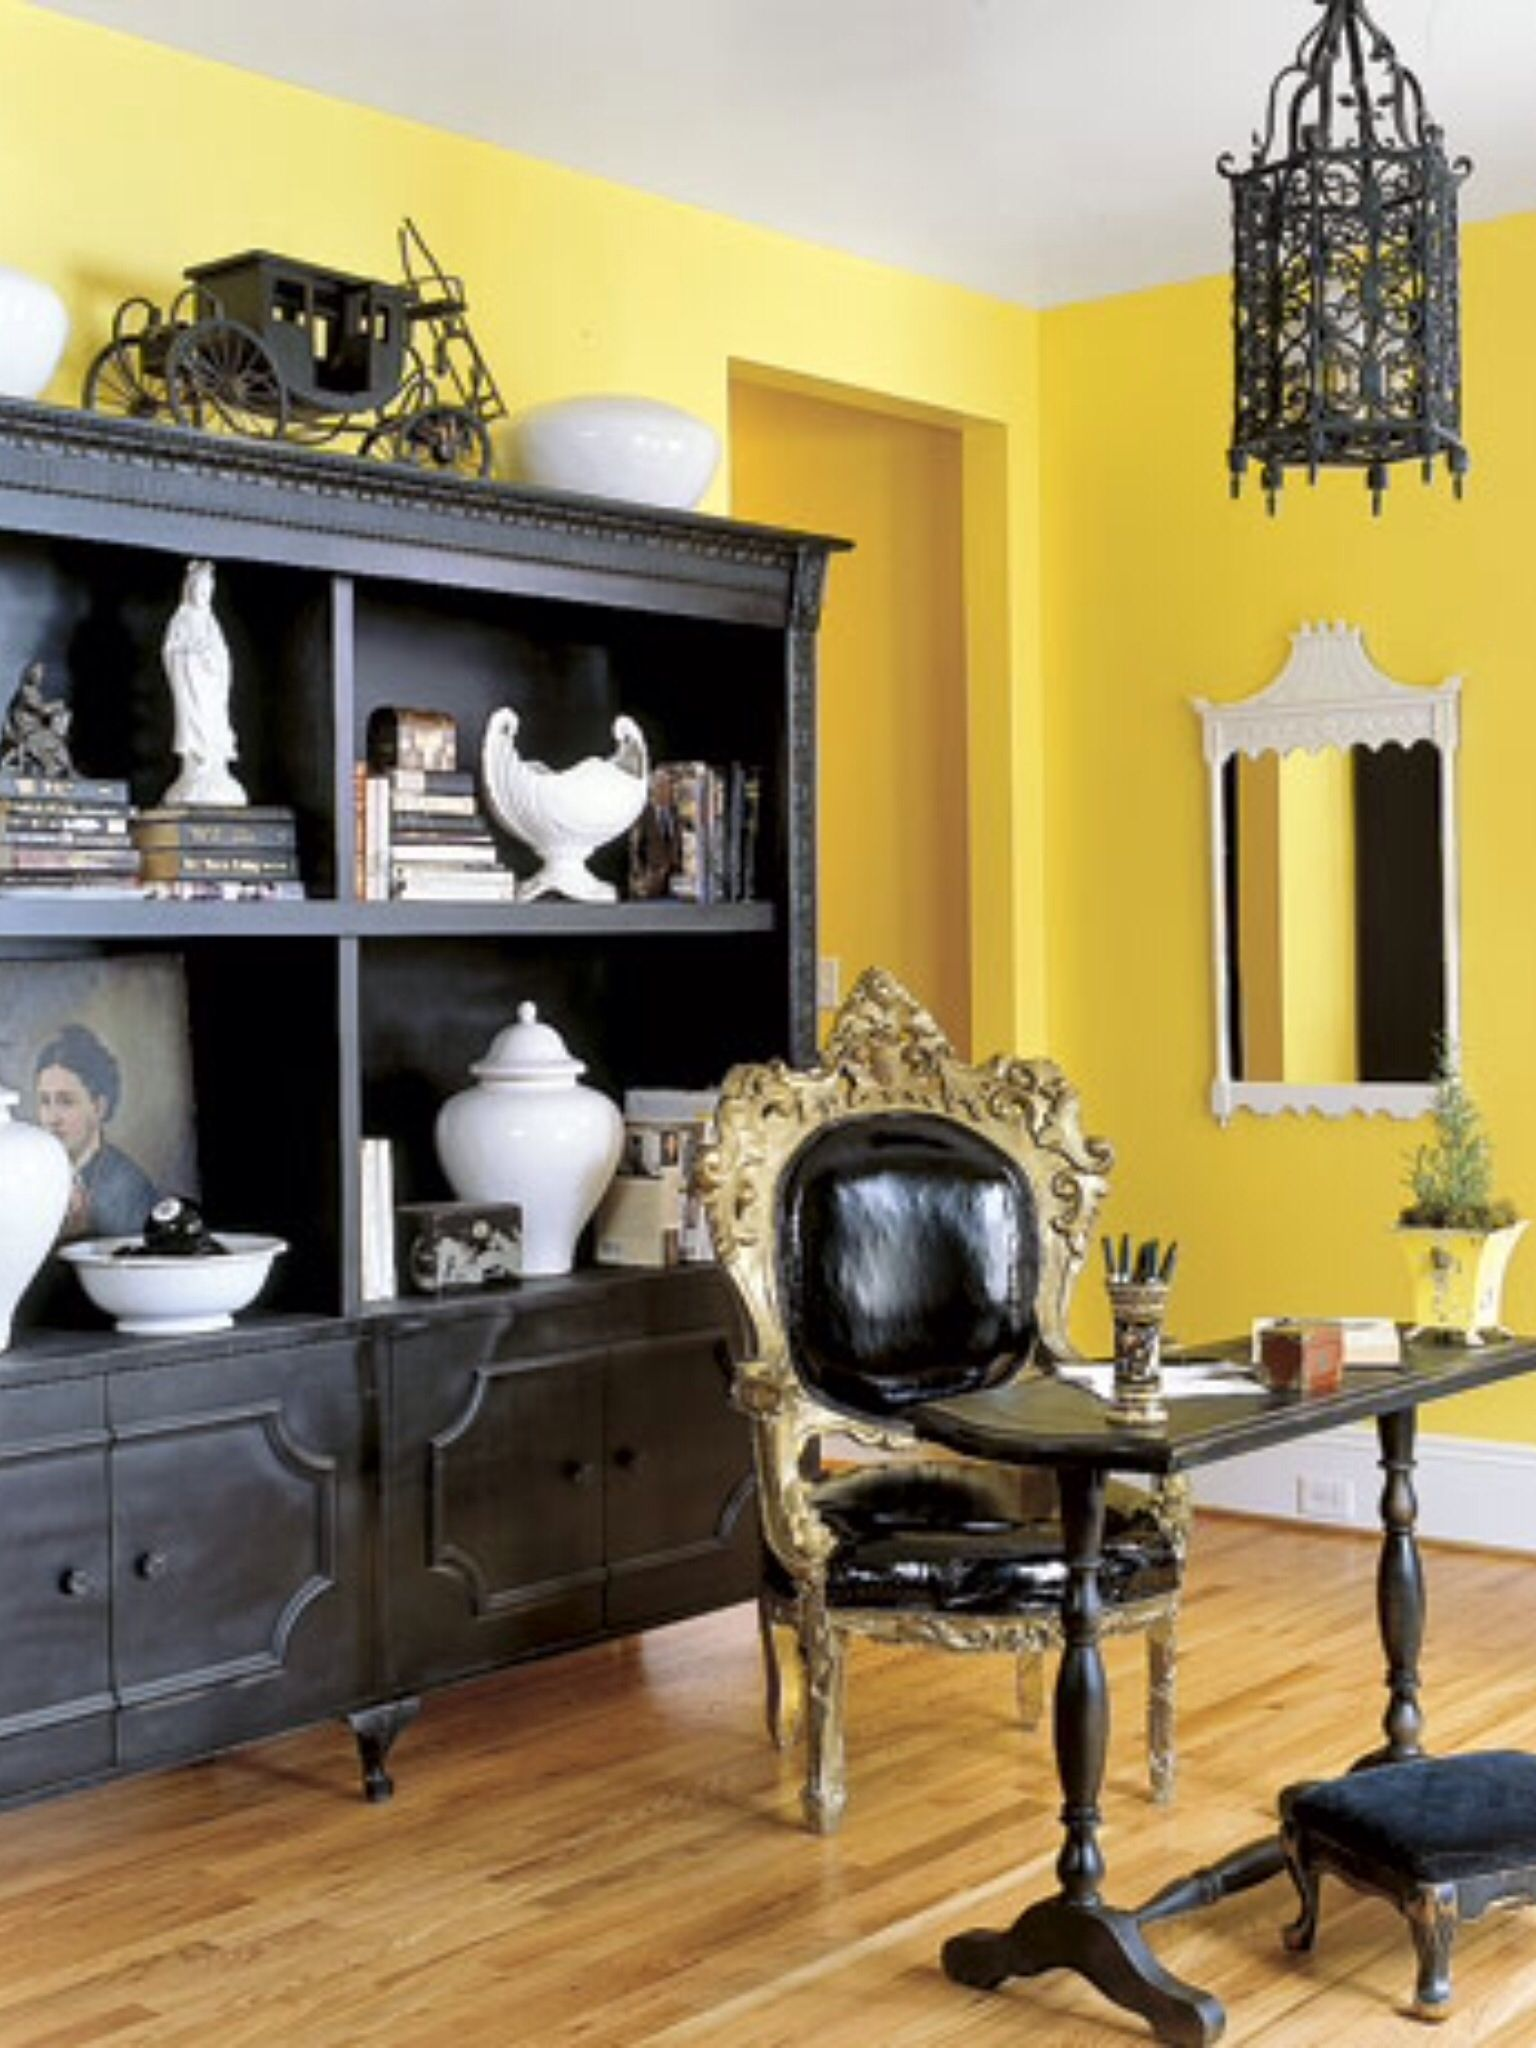 Home Office | Yellow home decor, Yellow room, Yellow decor